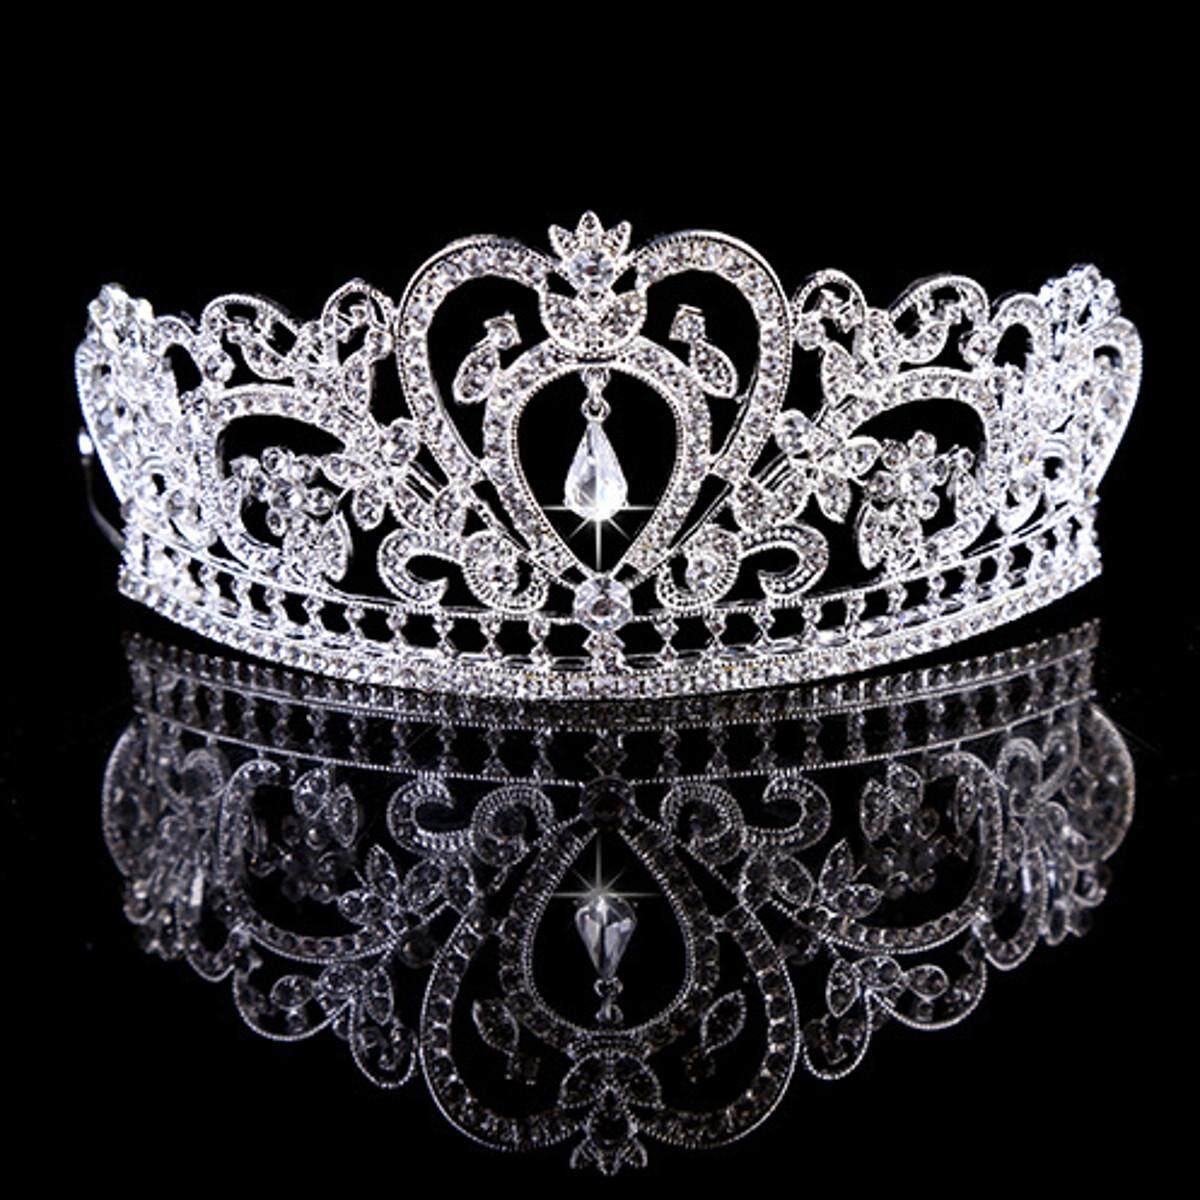 5PCS Princess Austrian Bridal Crystal Wedding Hair Tiara Crown Prom Veil Headband Silver